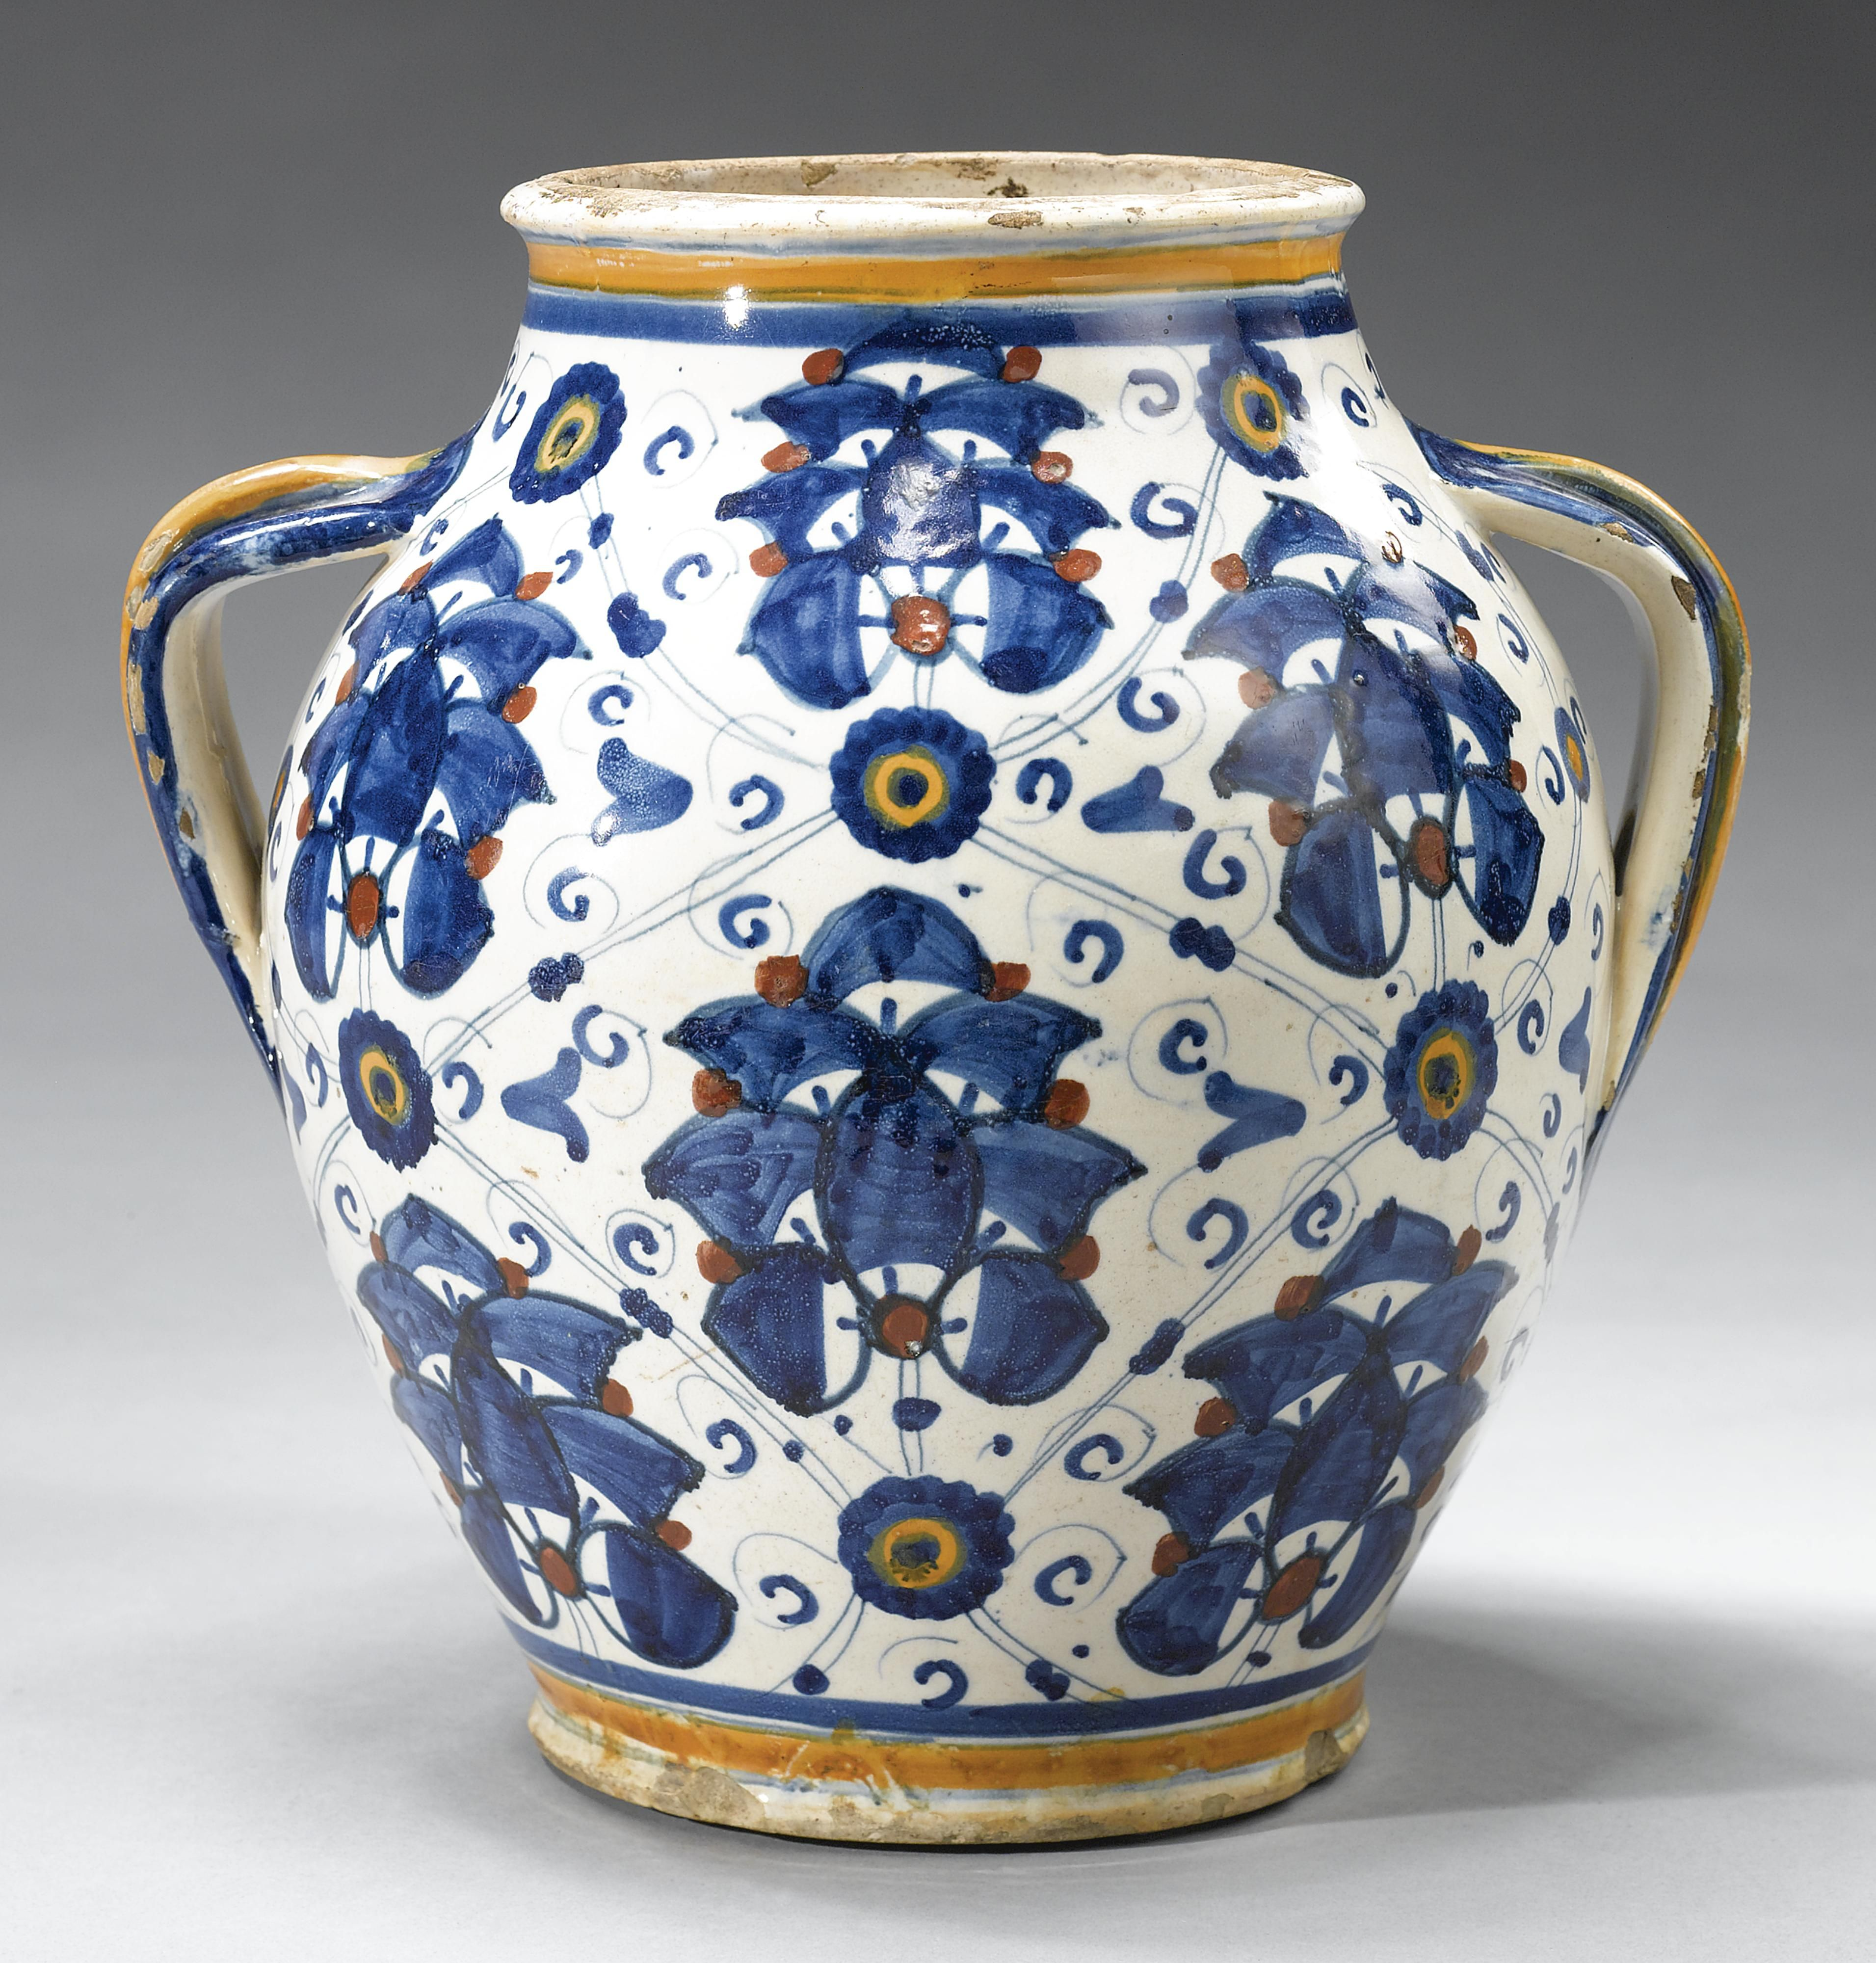 Medieval and Later Italian Pottery in the Ashmolean Museum Italian Maiolica and Europe